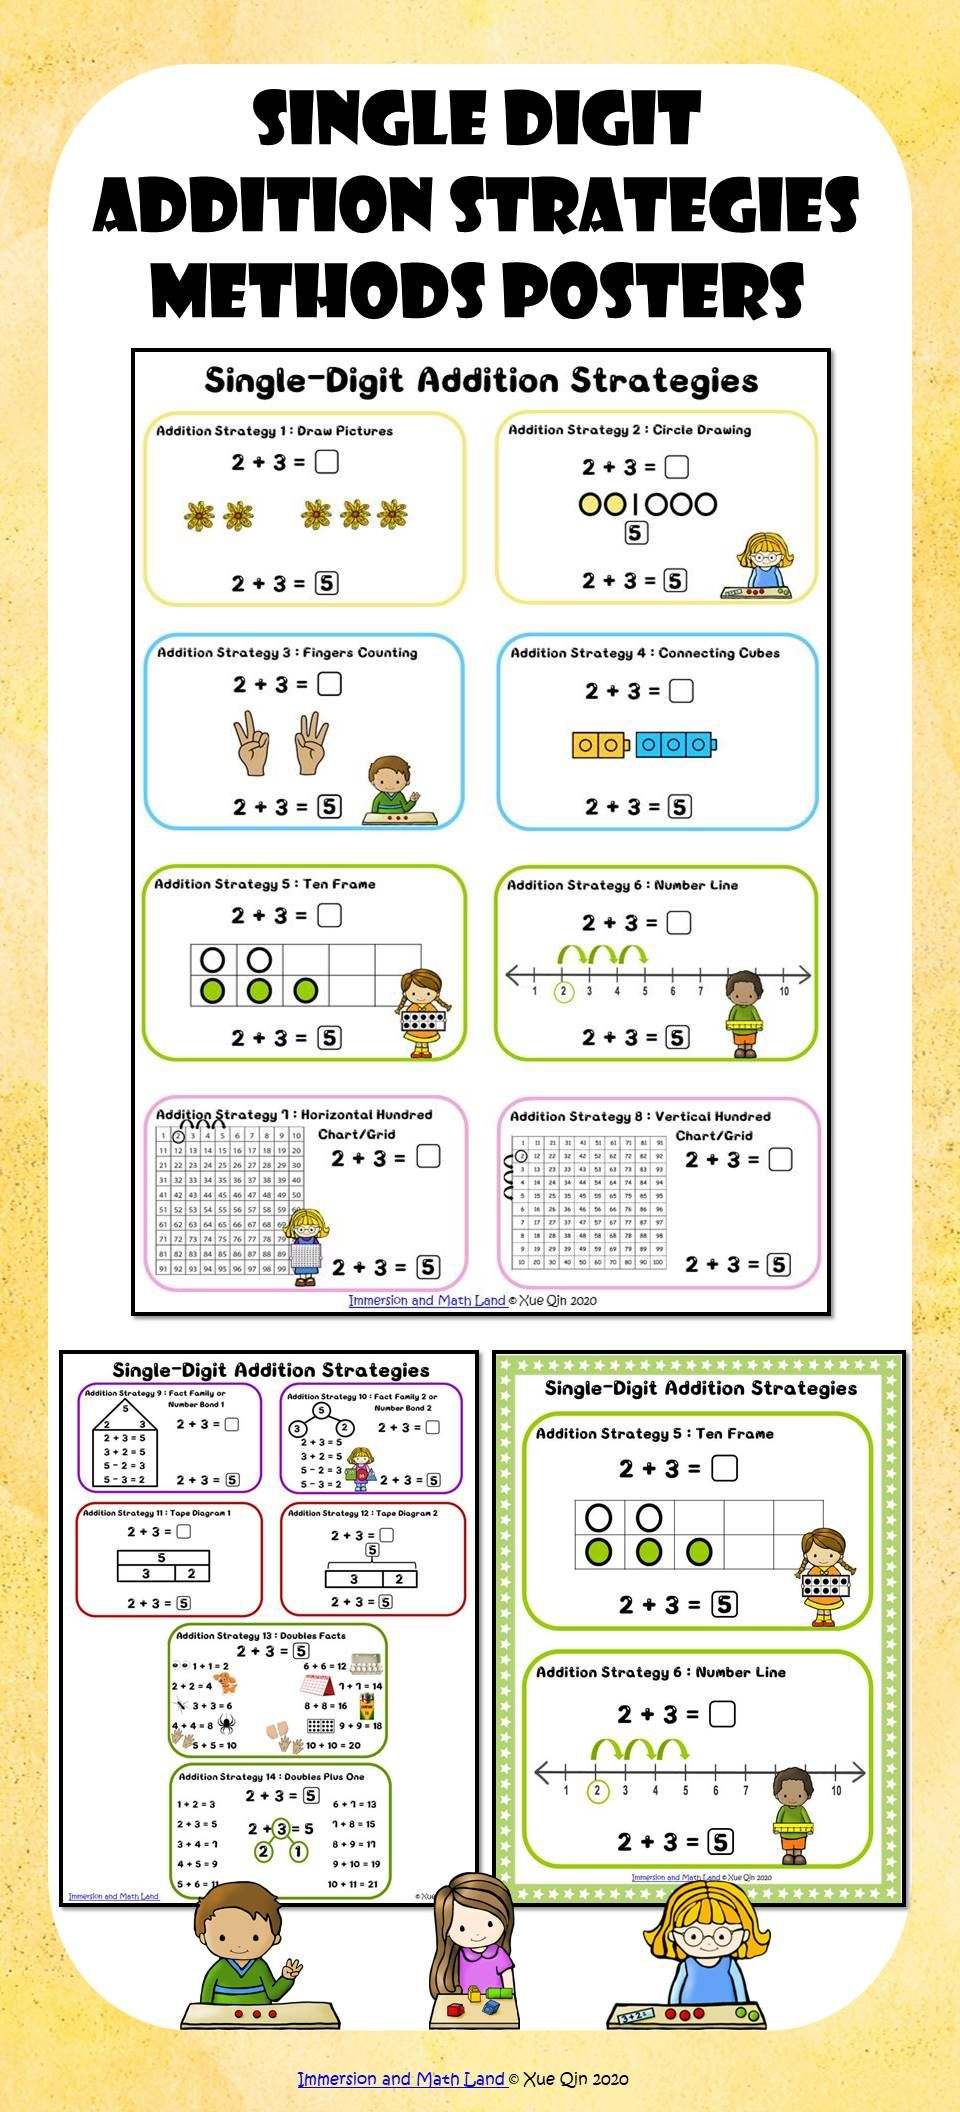 Single Digit Addition Strategies Methods Posters Distance Learning Math Expressions Addition Strategies Math Adding to single digit numbers